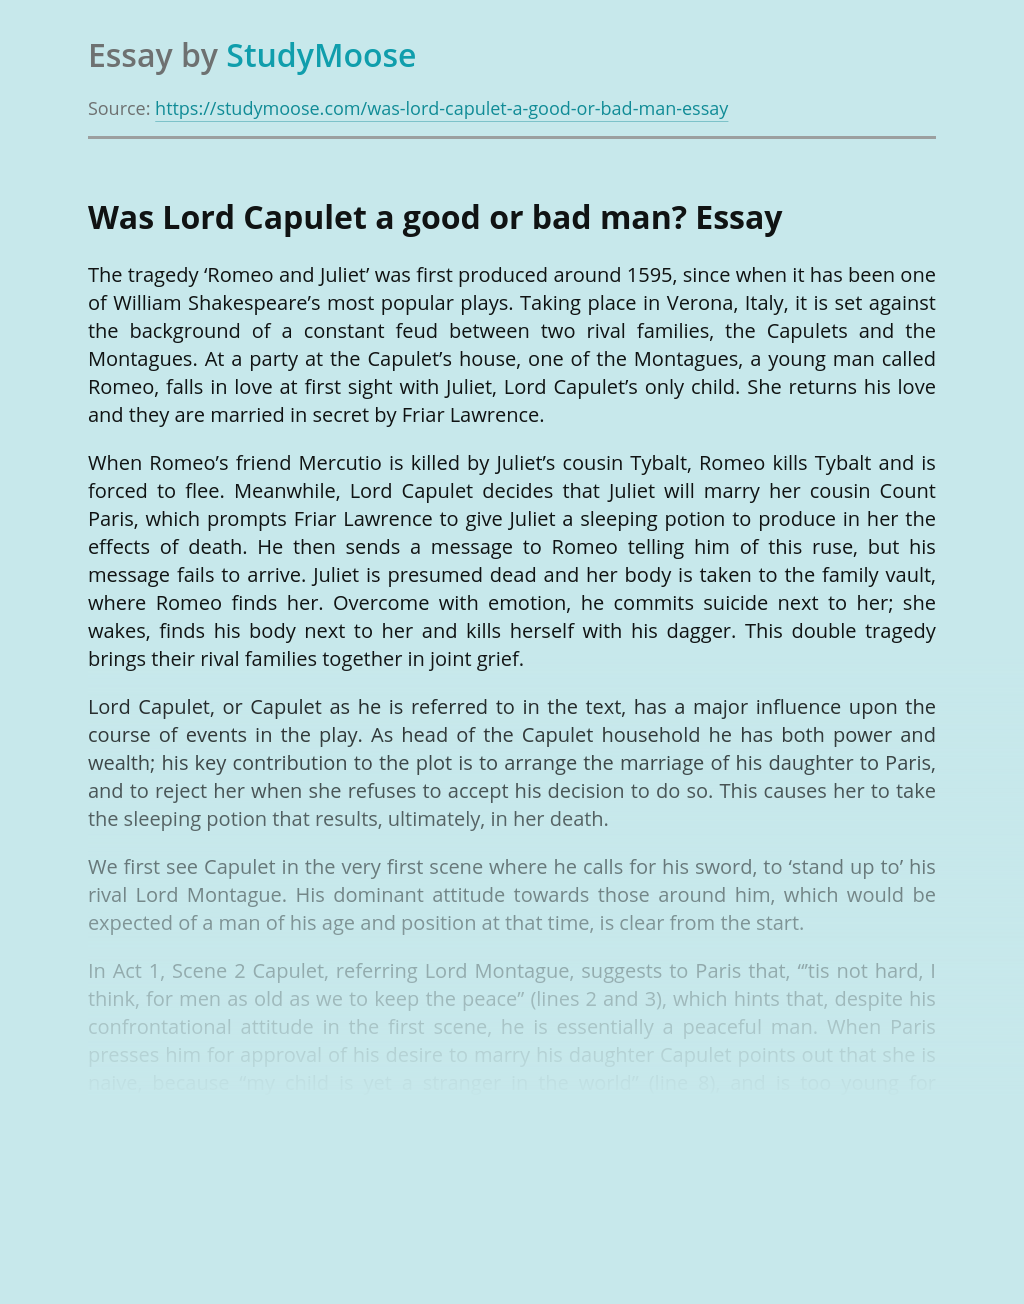 Character Traits of Lord Capulet